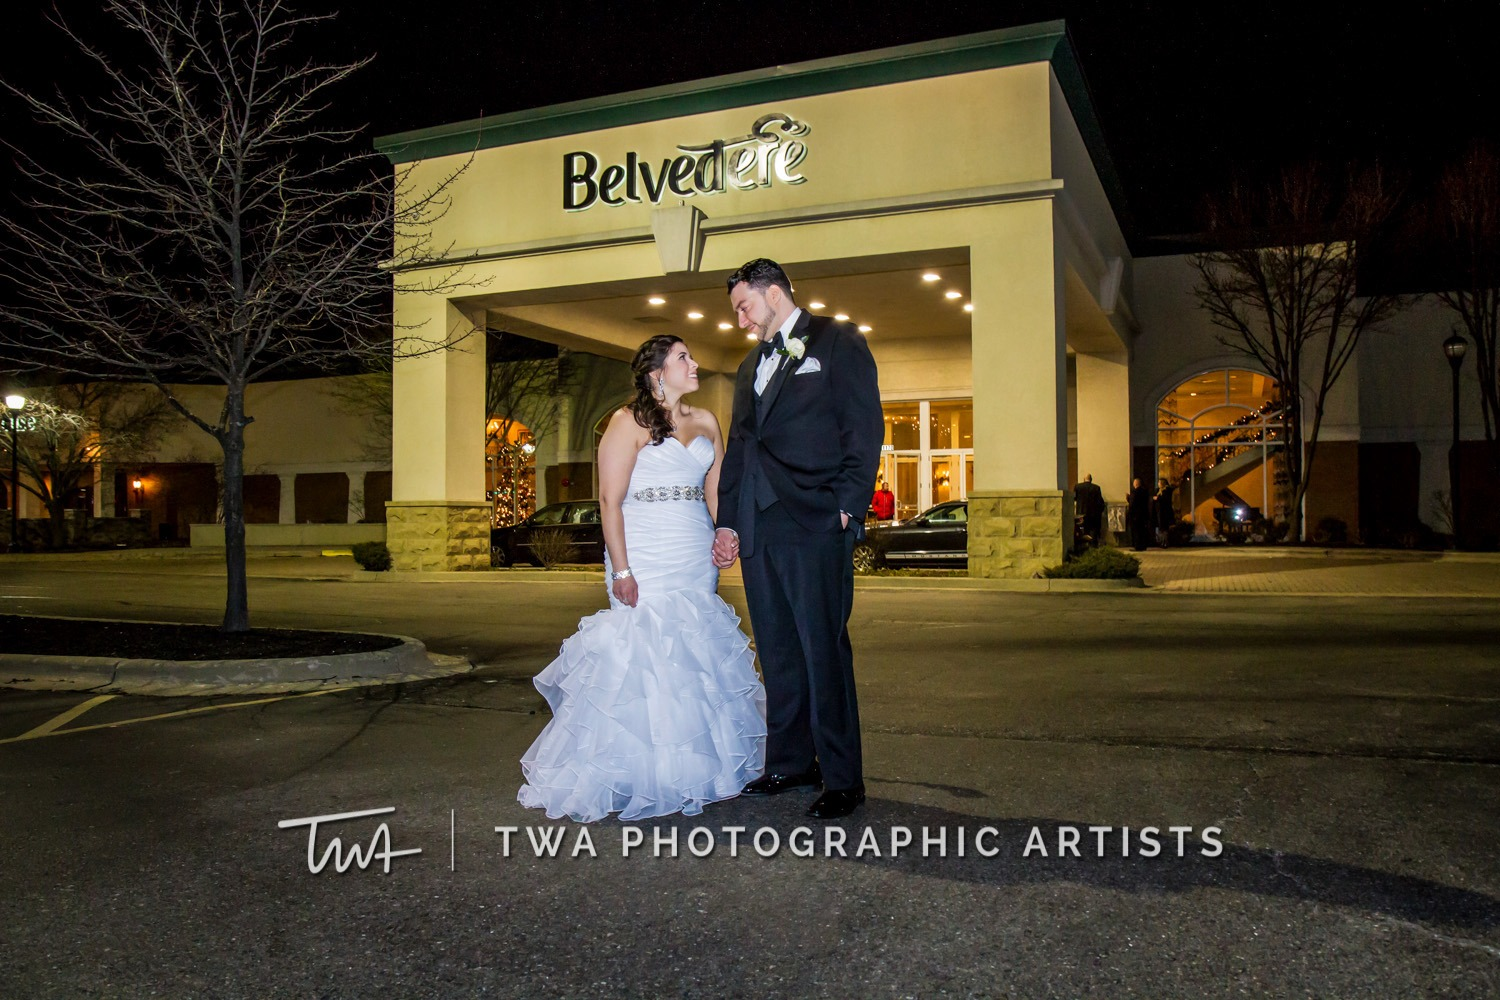 Chicago-Wedding-Photographer-TWA-Photographic-Artists-Belvedere-Banquets_Bentley_Garrido_MB_JA-0882